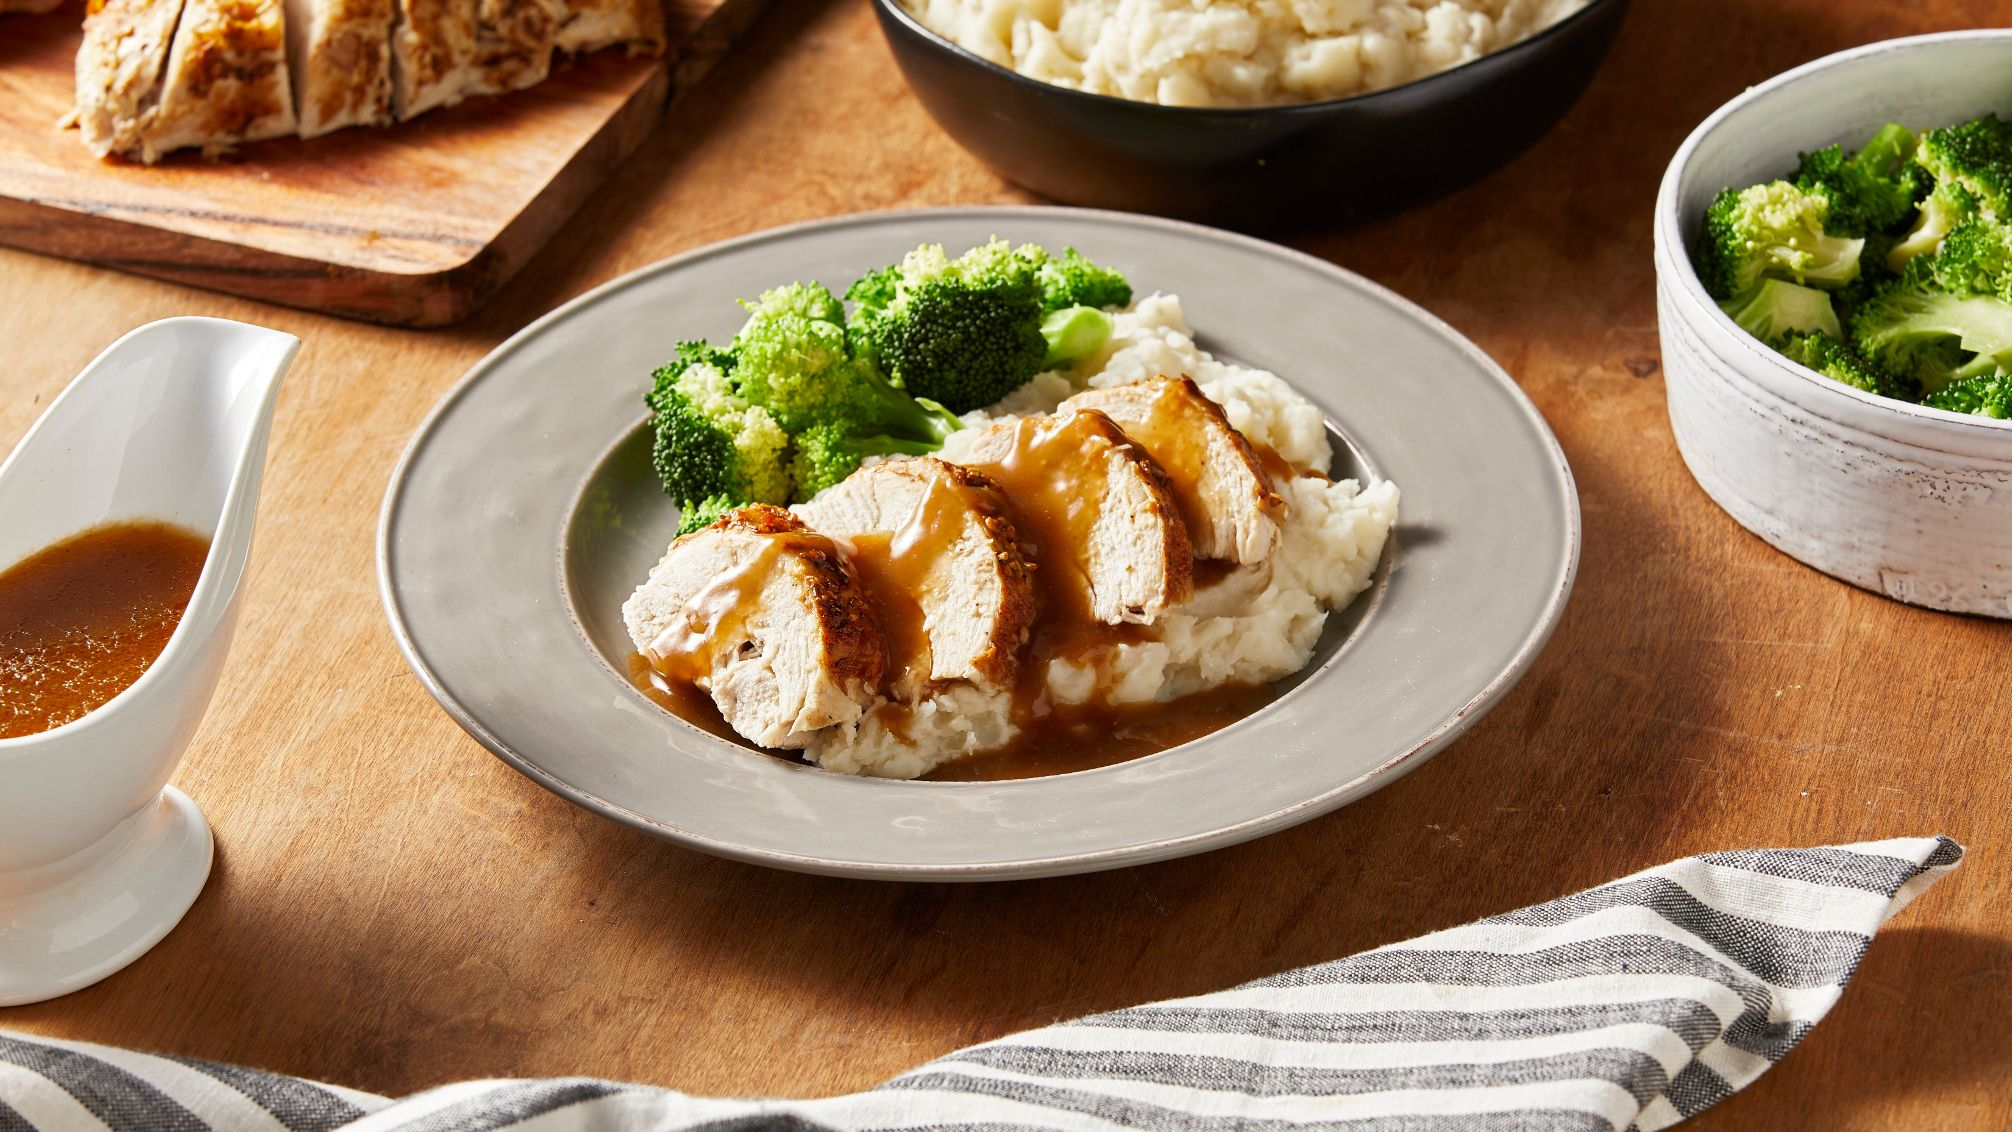 McCormick Instant Pot® Rosemary Chicken with Gravy